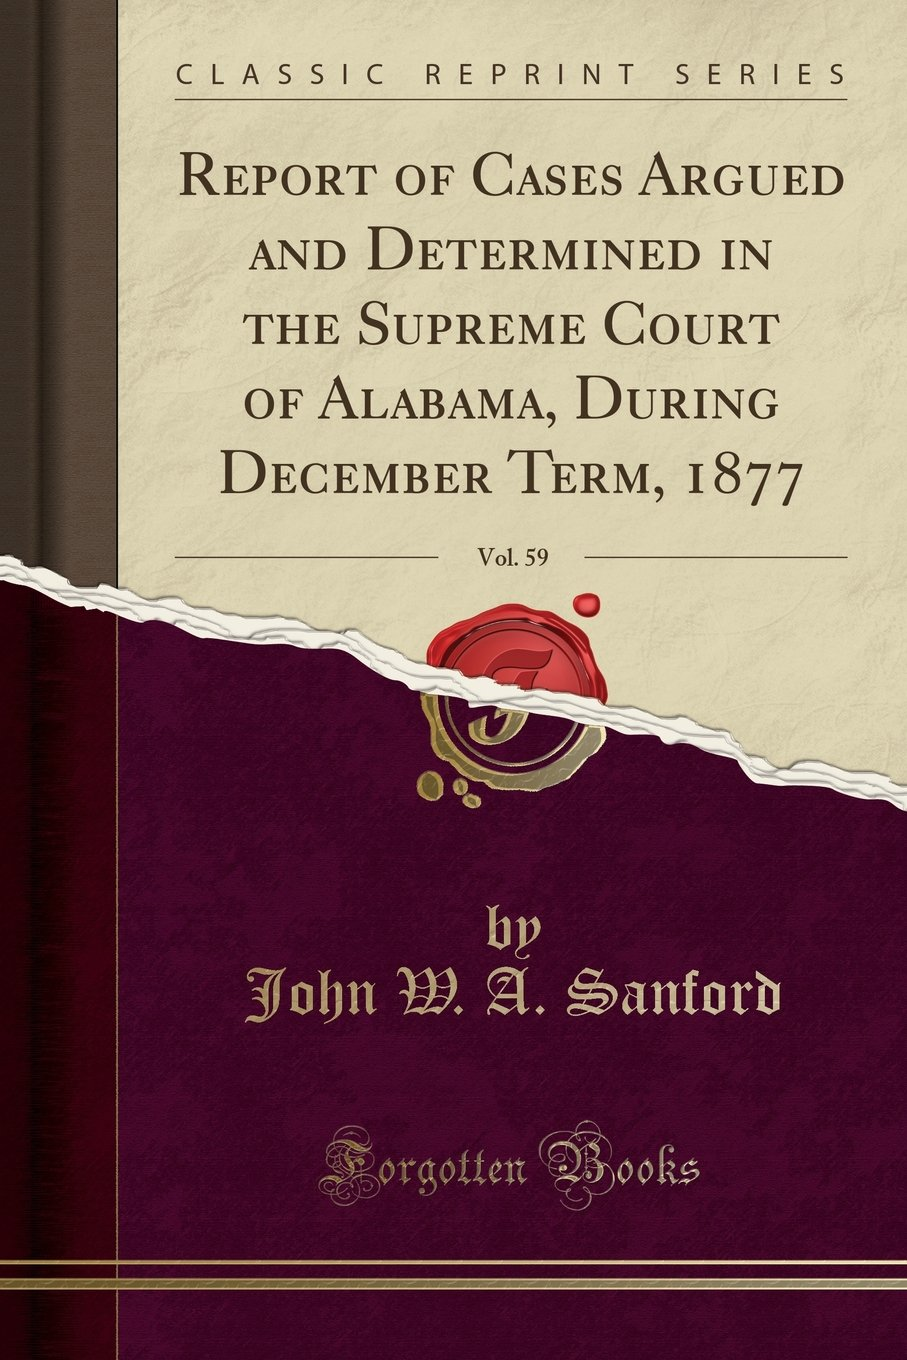 Read Online Report of Cases Argued and Determined in the Supreme Court of Alabama, During December Term, 1877, Vol. 59 (Classic Reprint) PDF